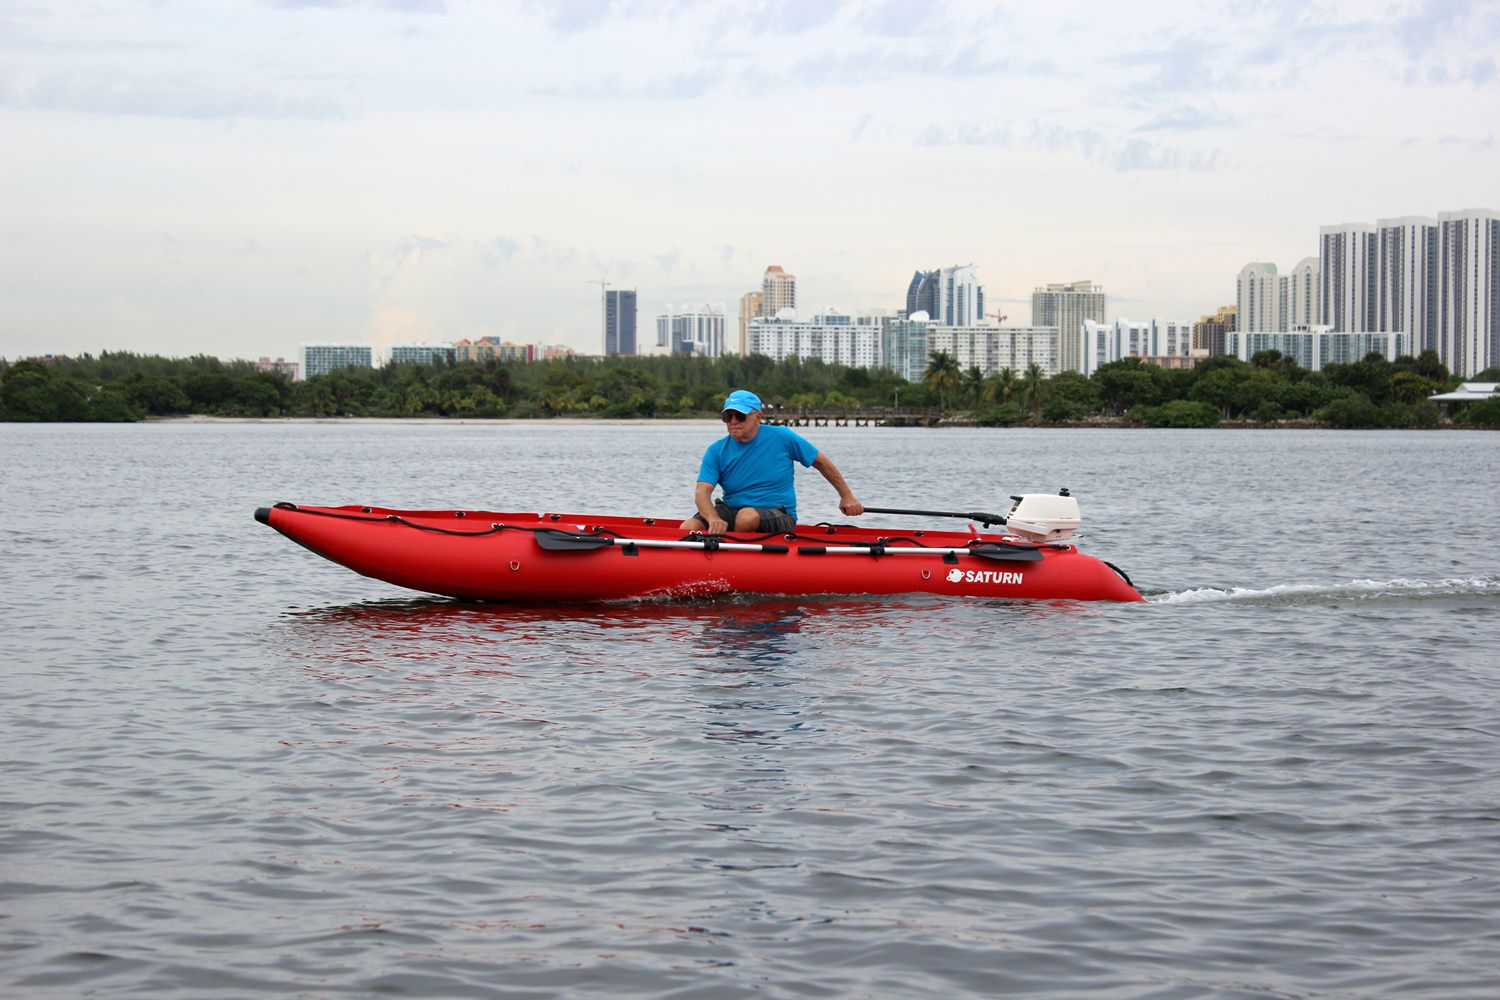 Rowing the New 15' Saturn KaBoat SK470 - Red